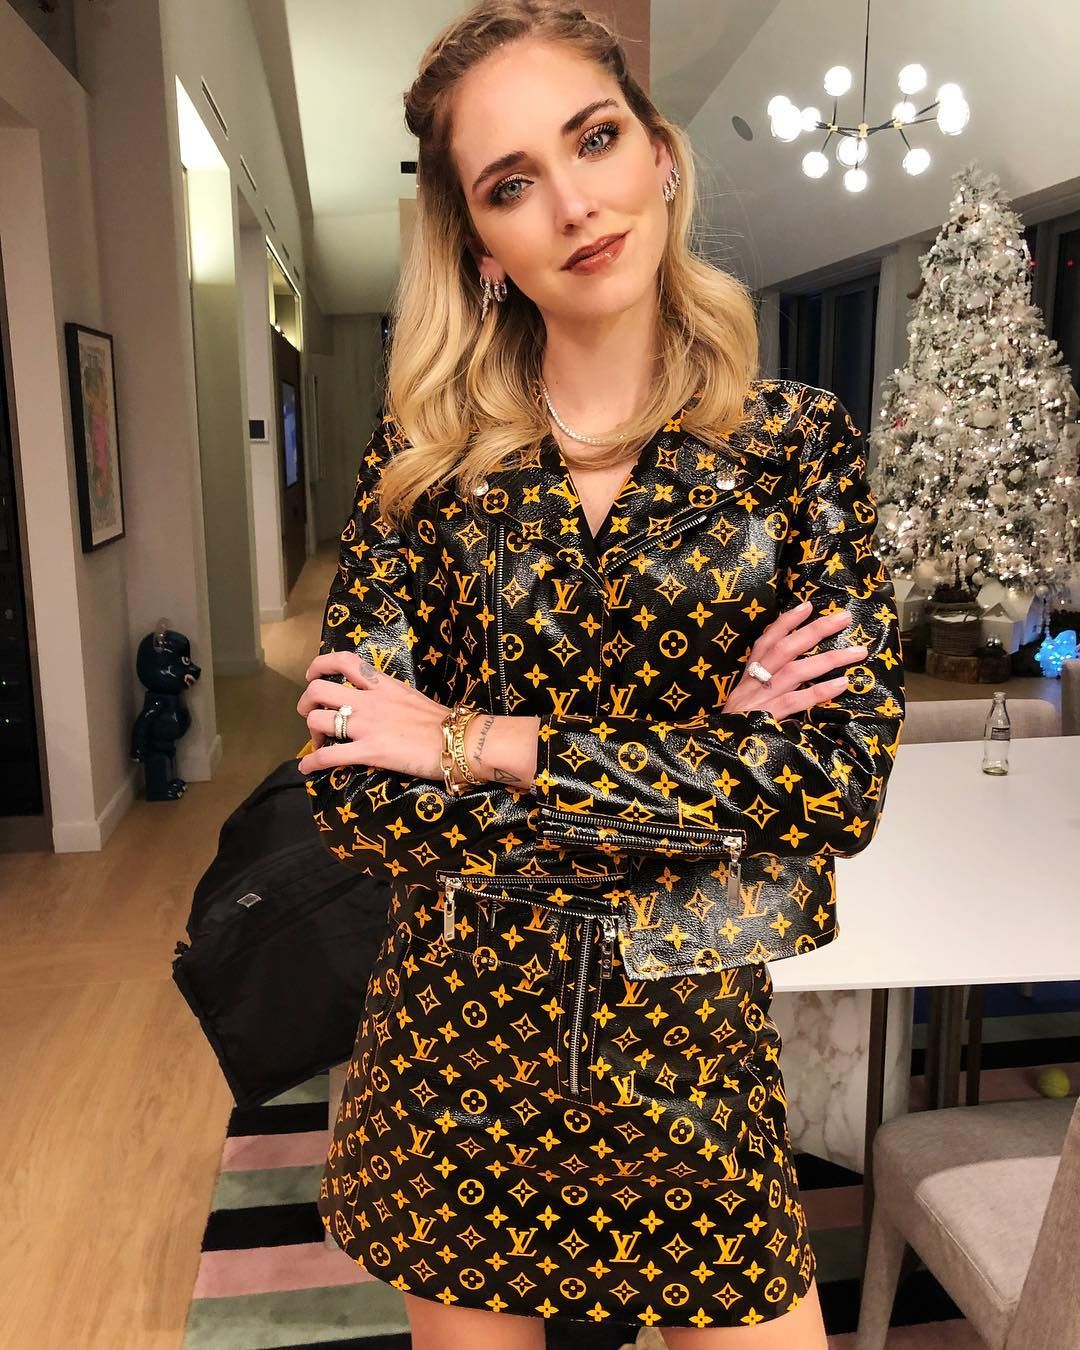 Chiara Ferragni On Instagram Back In Milan For Two Days Maldives Next For Our Honeymoon Looks Estilos Casuais Vestidos Chiques Curtos